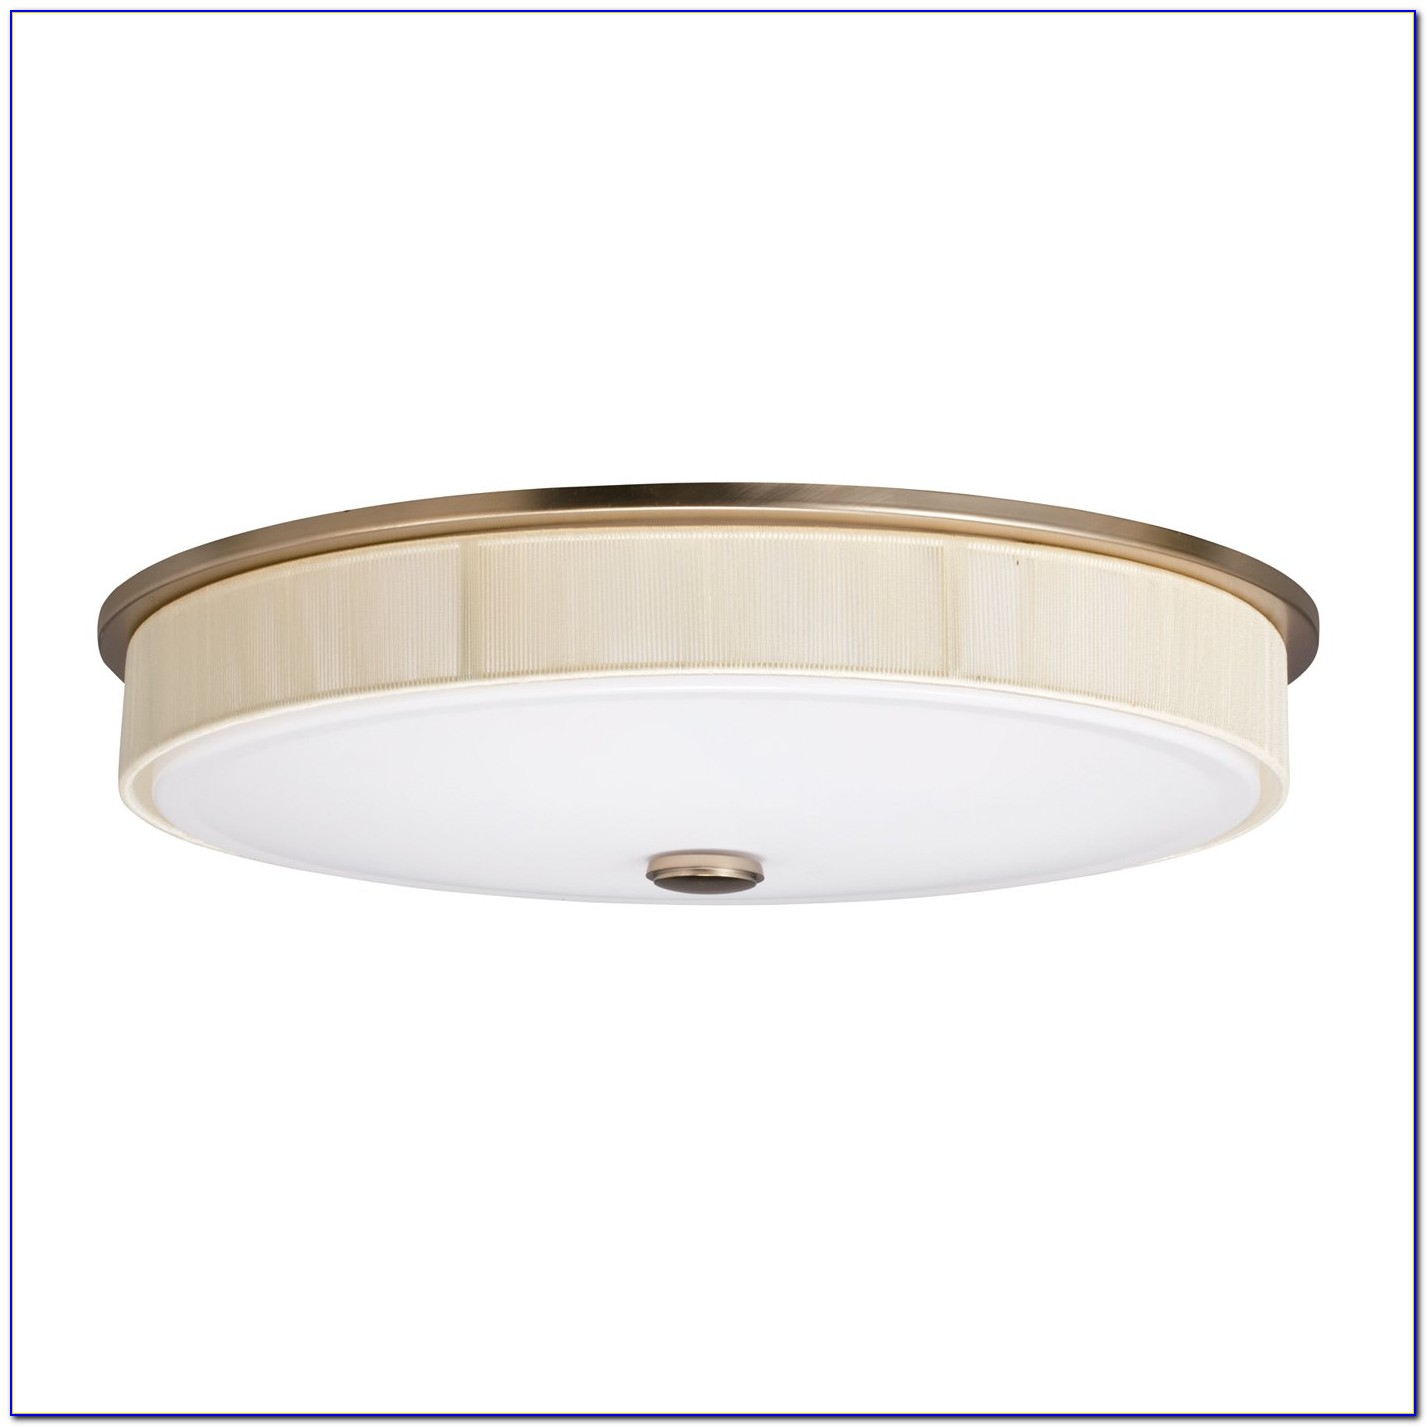 Fluorescent Flush Mount Ceiling Light